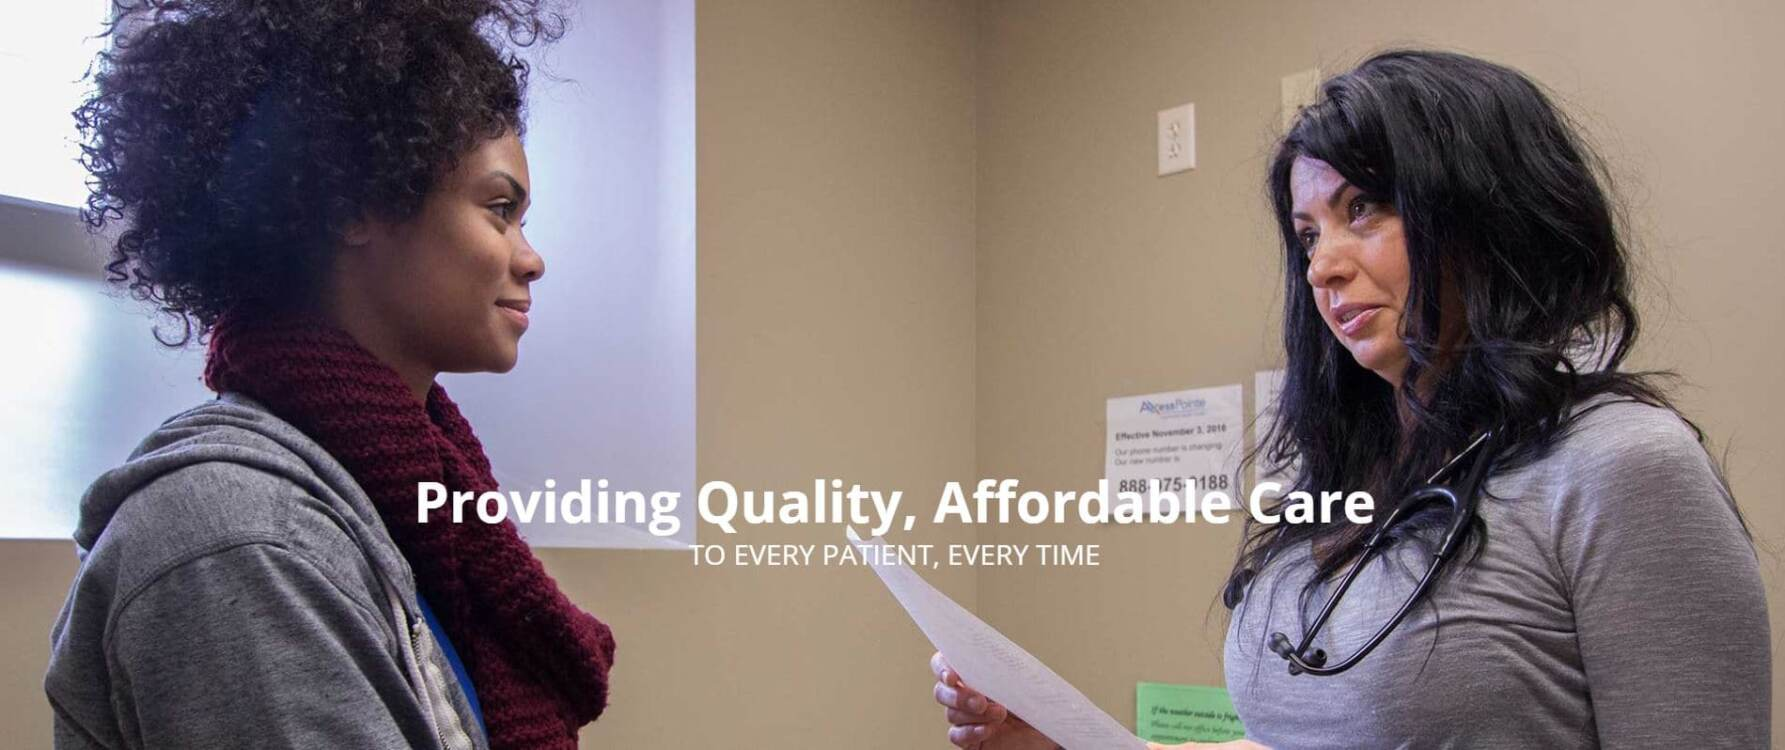 AxessPointe | Providing Quality, Affordable Care to Every Patient, Every Time | A doctor speaking with their patient